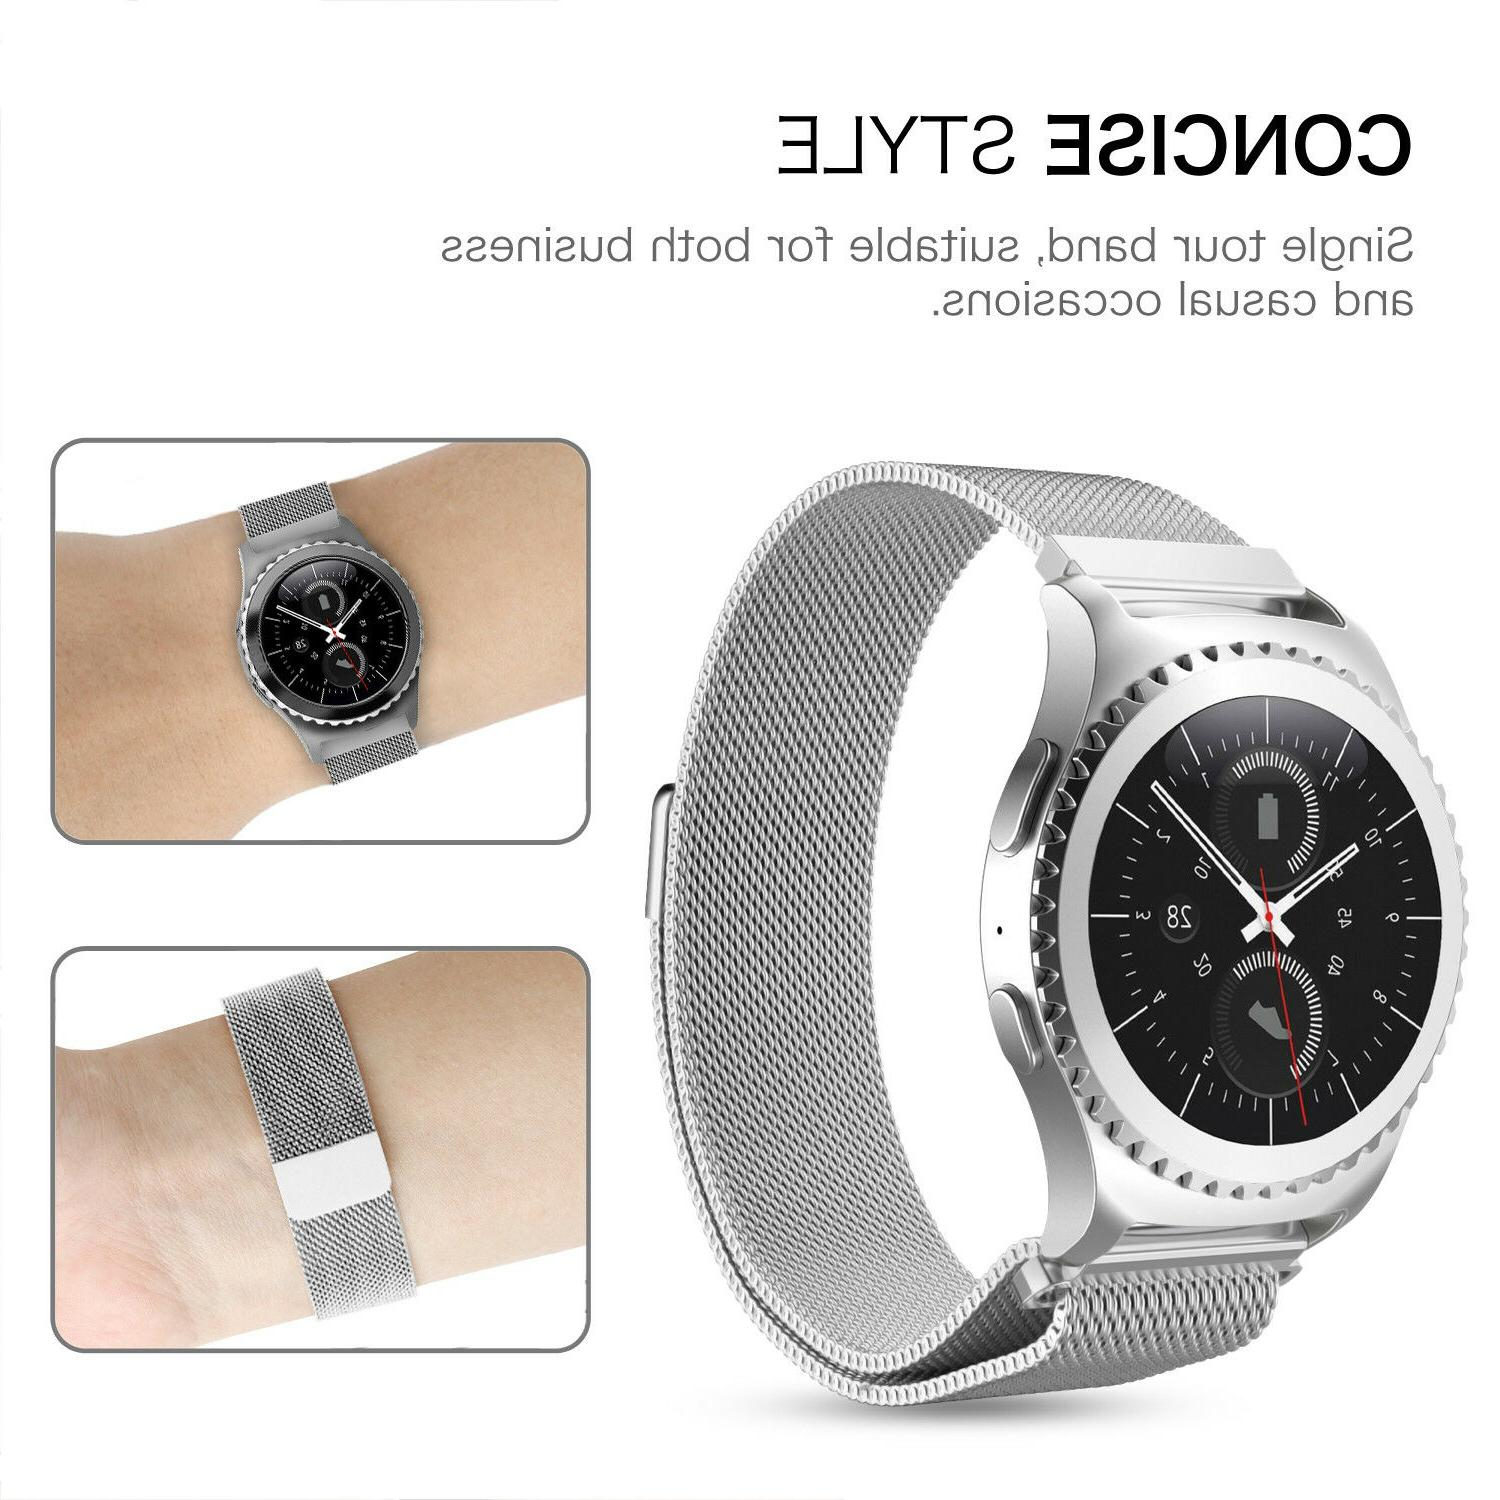 2 Release Stainless Steel Band For Vivoactive 3